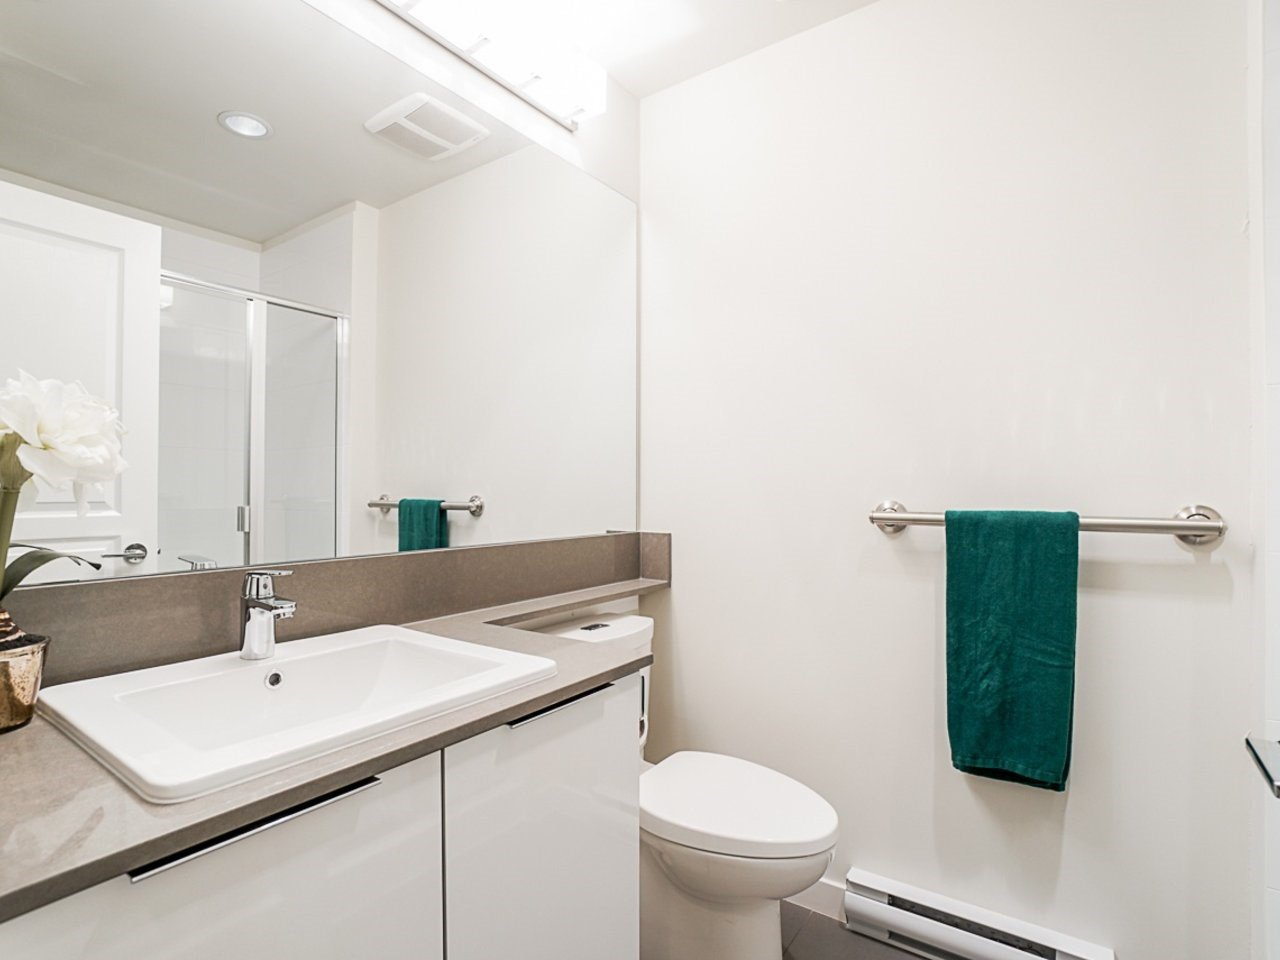 Photo 27: Photos: 108 1151 WINDSOR Mews in Coquitlam: New Horizons Condo for sale : MLS®# R2500299